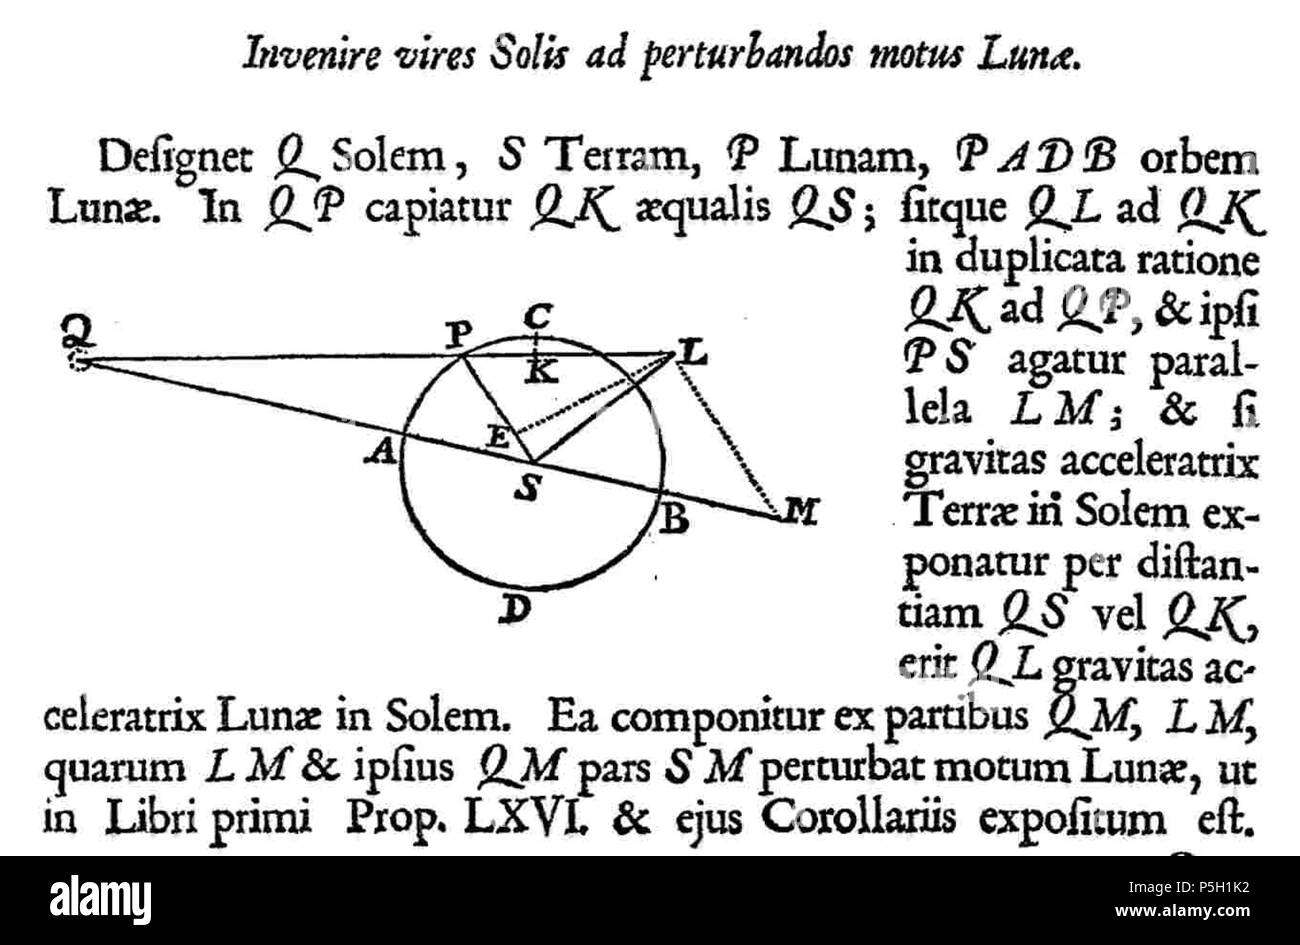 Na english isaac newtons diagram from the principia of 1687 na english isaac newtons diagram from the principia of 1687 book 3 proposition 25 at p434 with his pioneering analysis of perturbing forces on ccuart Choice Image